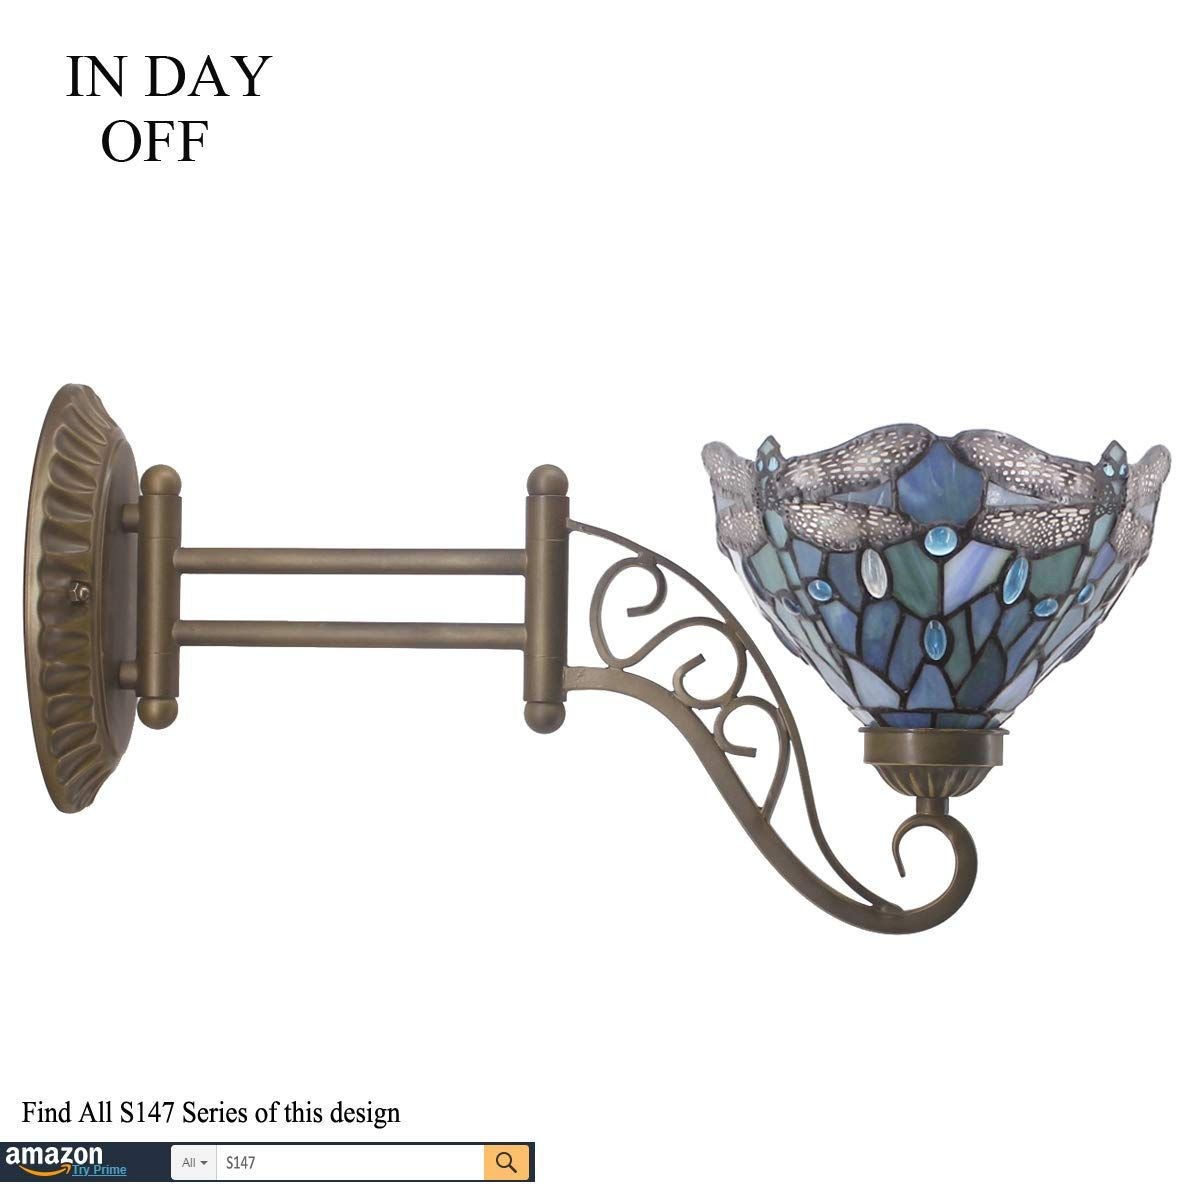 Tiffany Wall Sconce Lamp Up Or Down Light W8l19 Inch Sea Blue Stained Glass Dragonfly Shade Angle Swing Arm Adjustabl In 2020 Sconce Lamp Wall Fans Luxury Wall Sconces